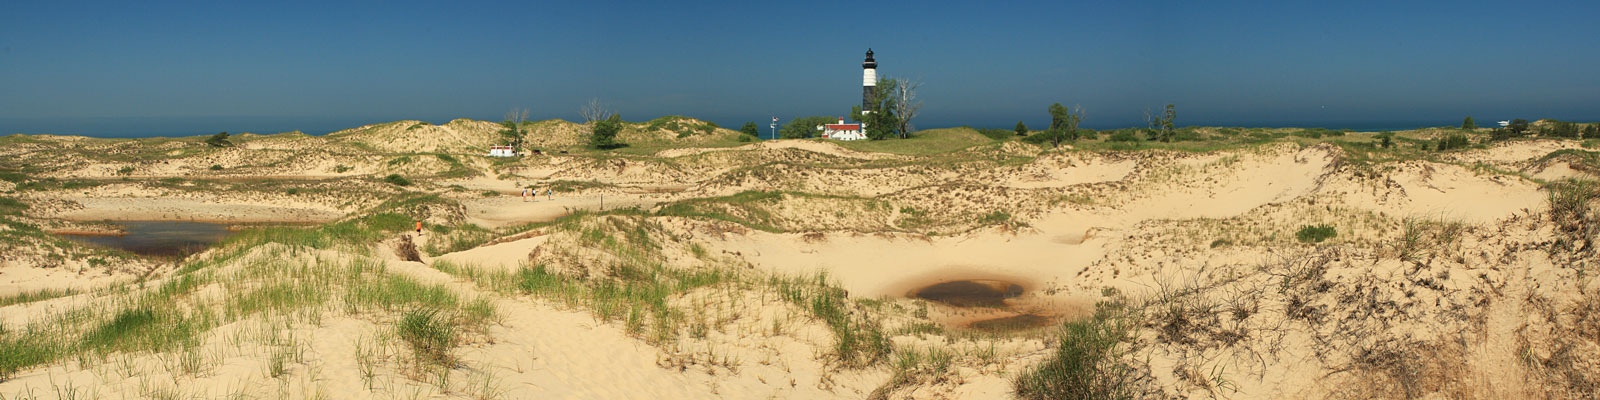 13-ludington-state-park-dune-panoramic